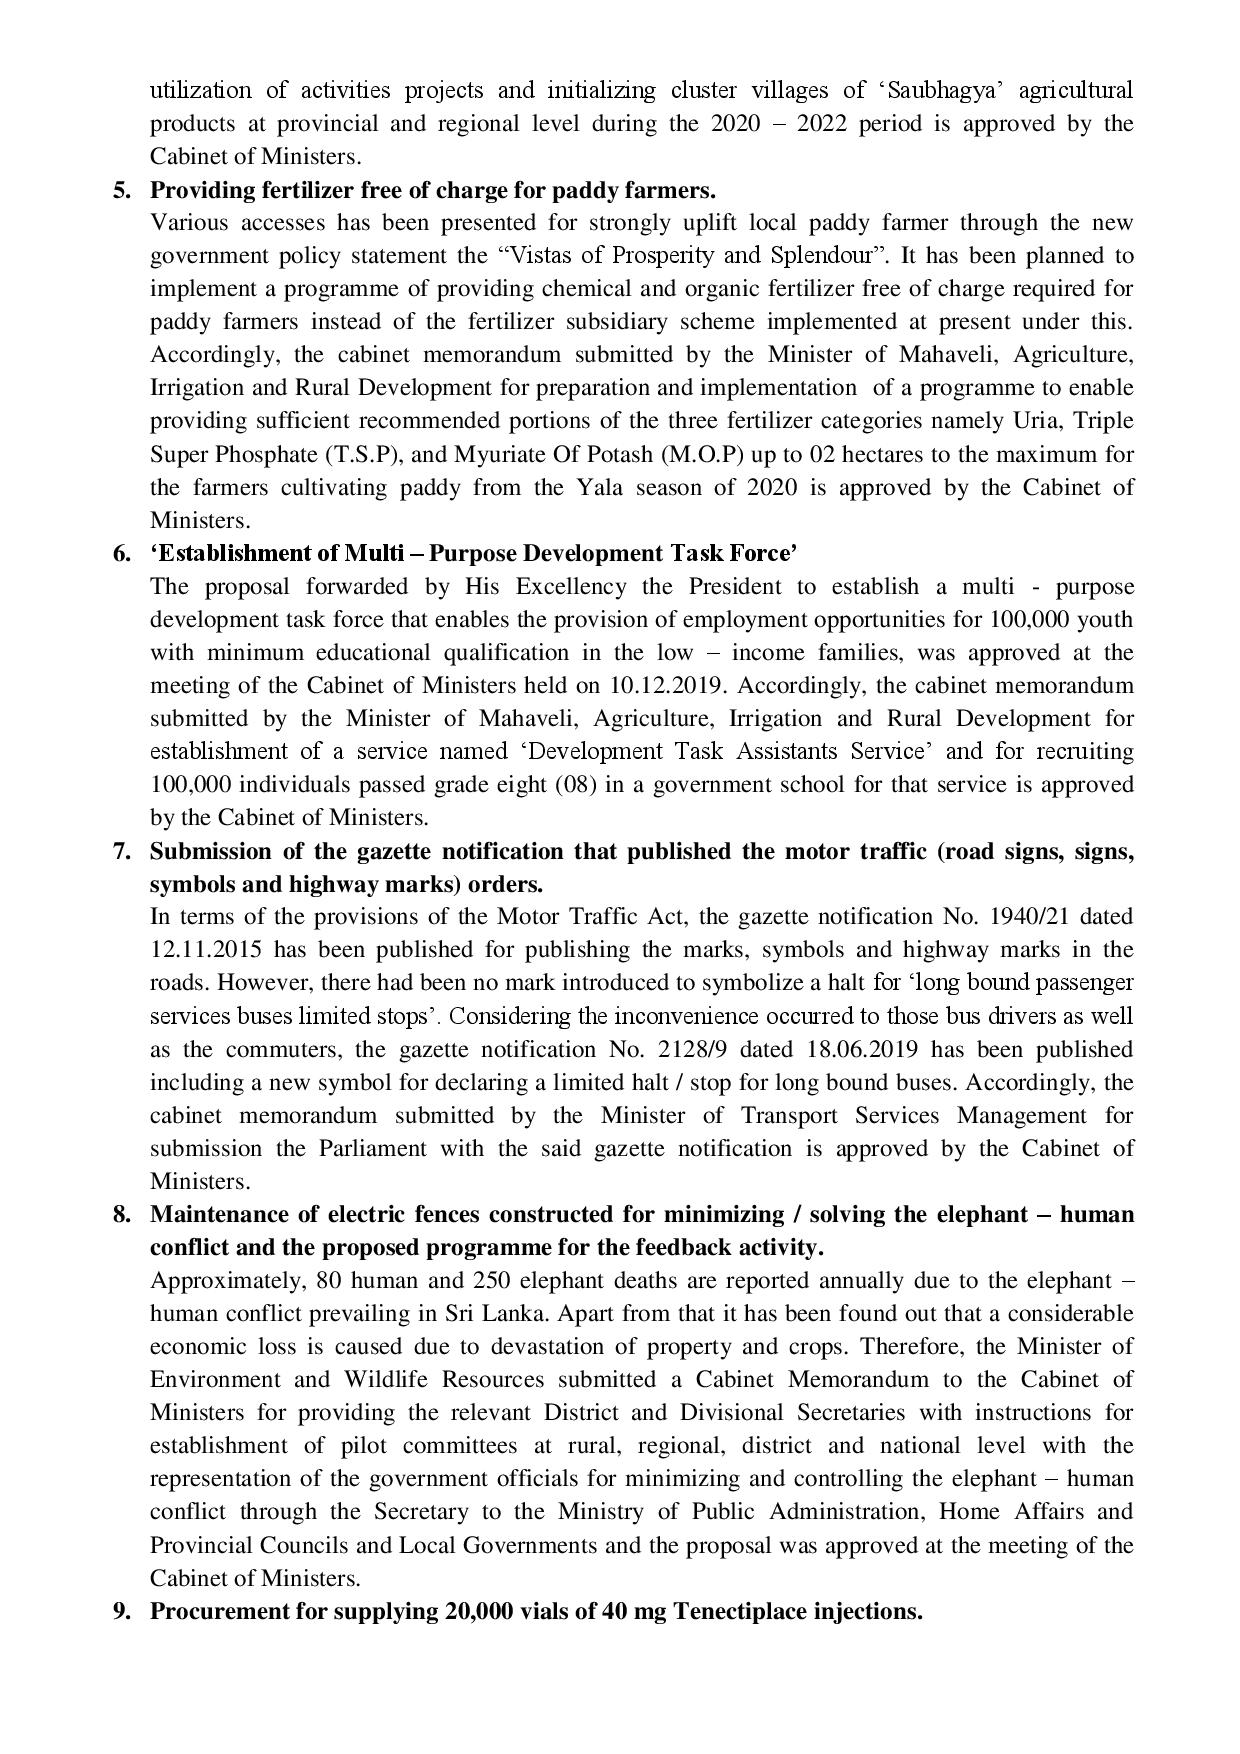 2 EDecisions taken at the meeting of the Cabinet of Ministers held on 08.01.2020 5 page 002